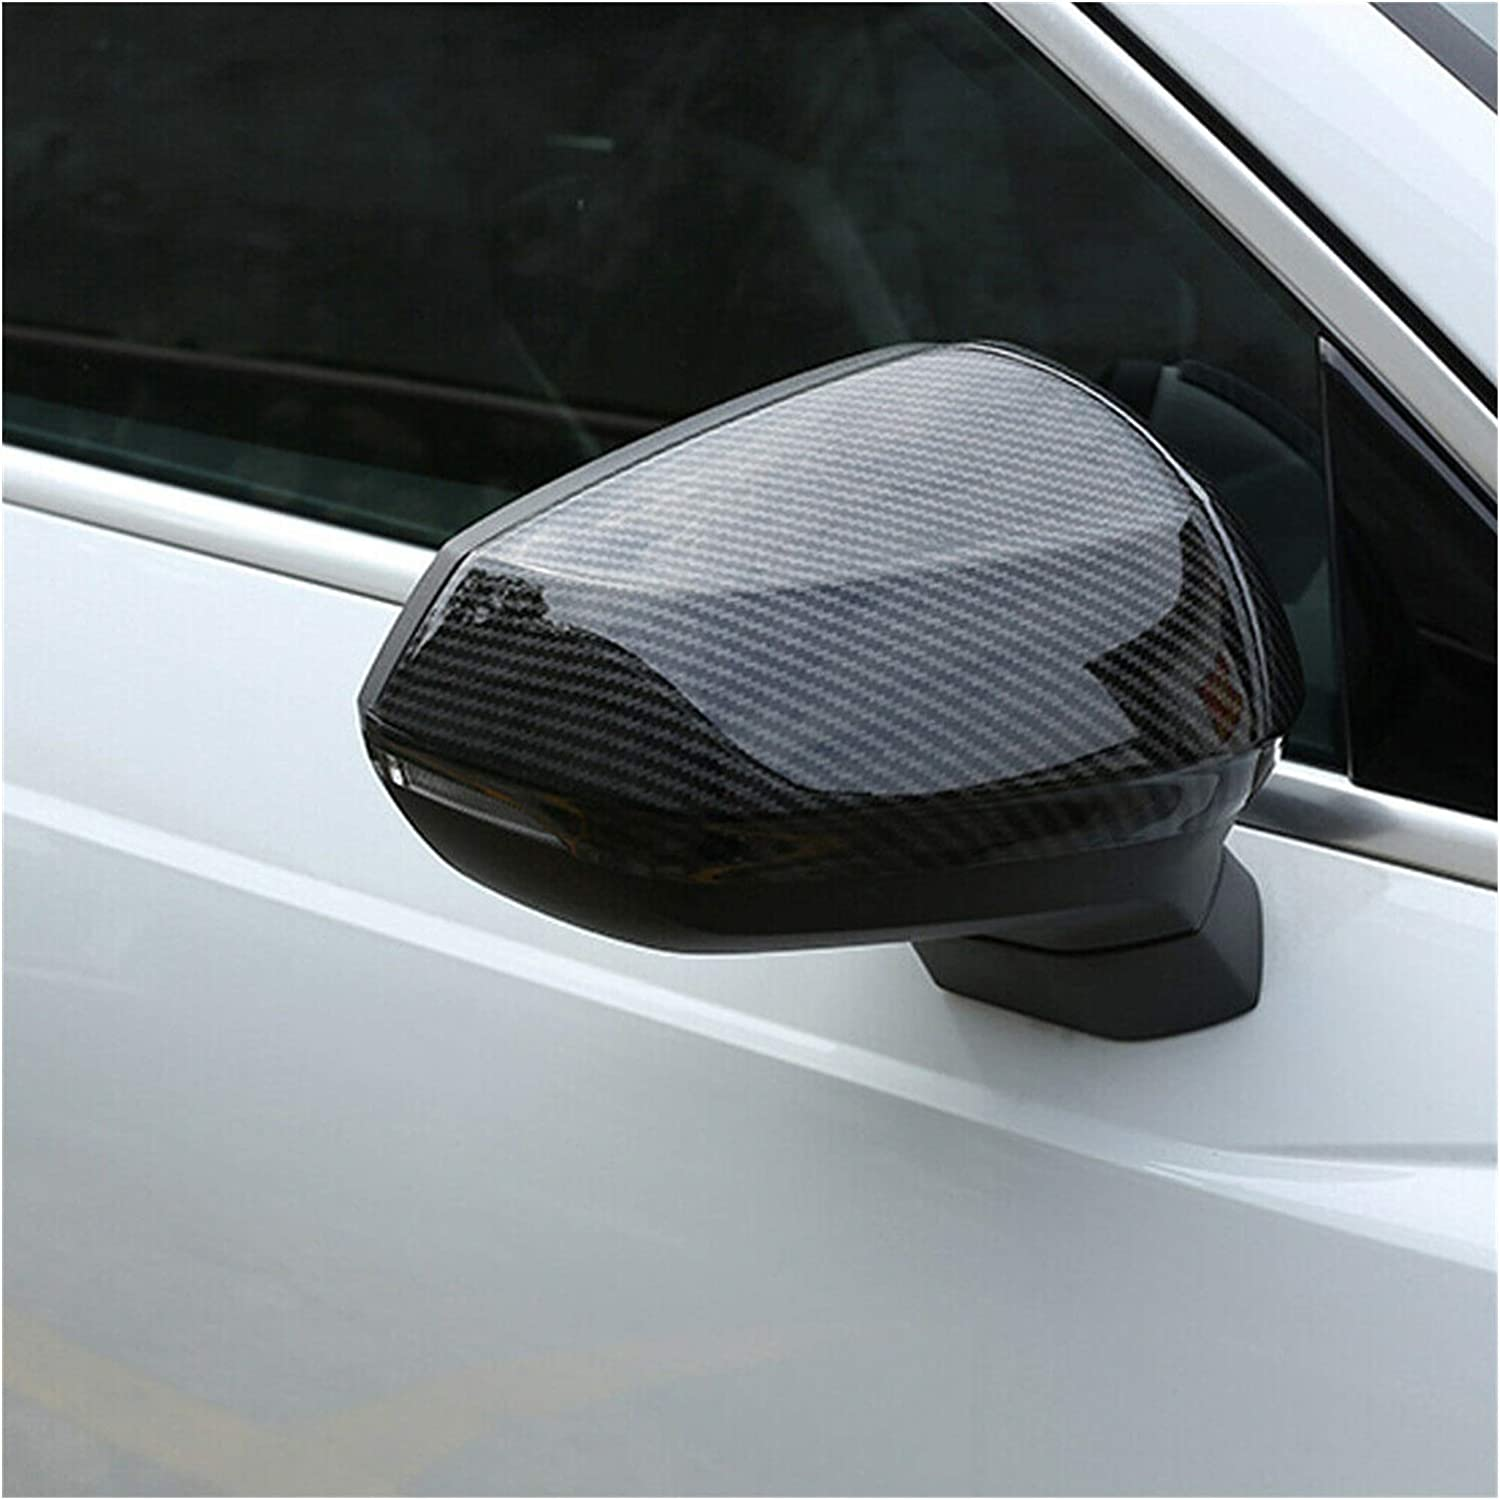 KKLL 1 year warranty Side Mirror Cover Fit for Carbon New York Mall 2018 Audi Q2L Q3 2019